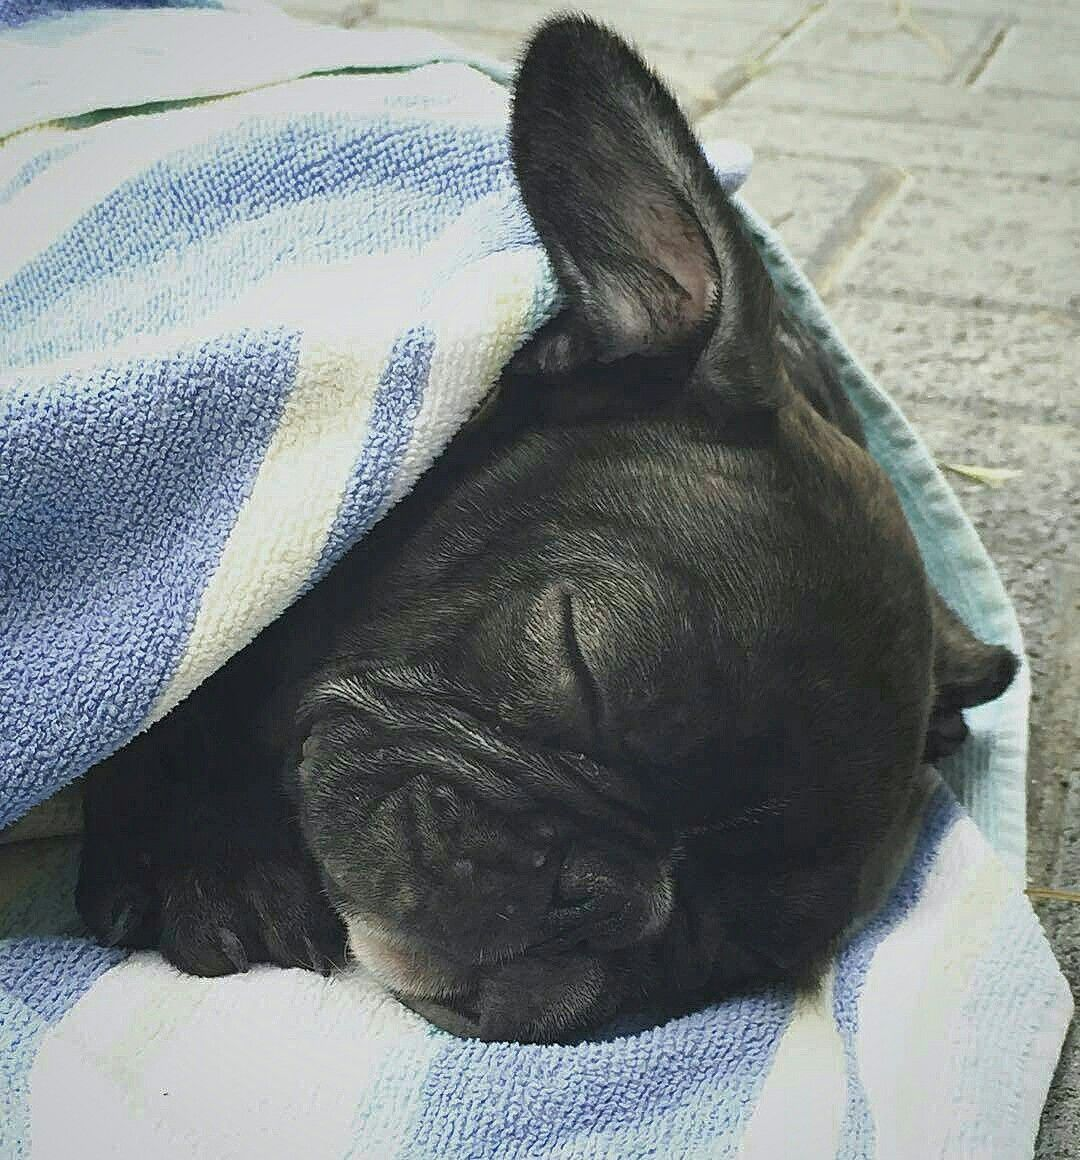 Good Morning And Happy New Year From Coconut The French Bulldog